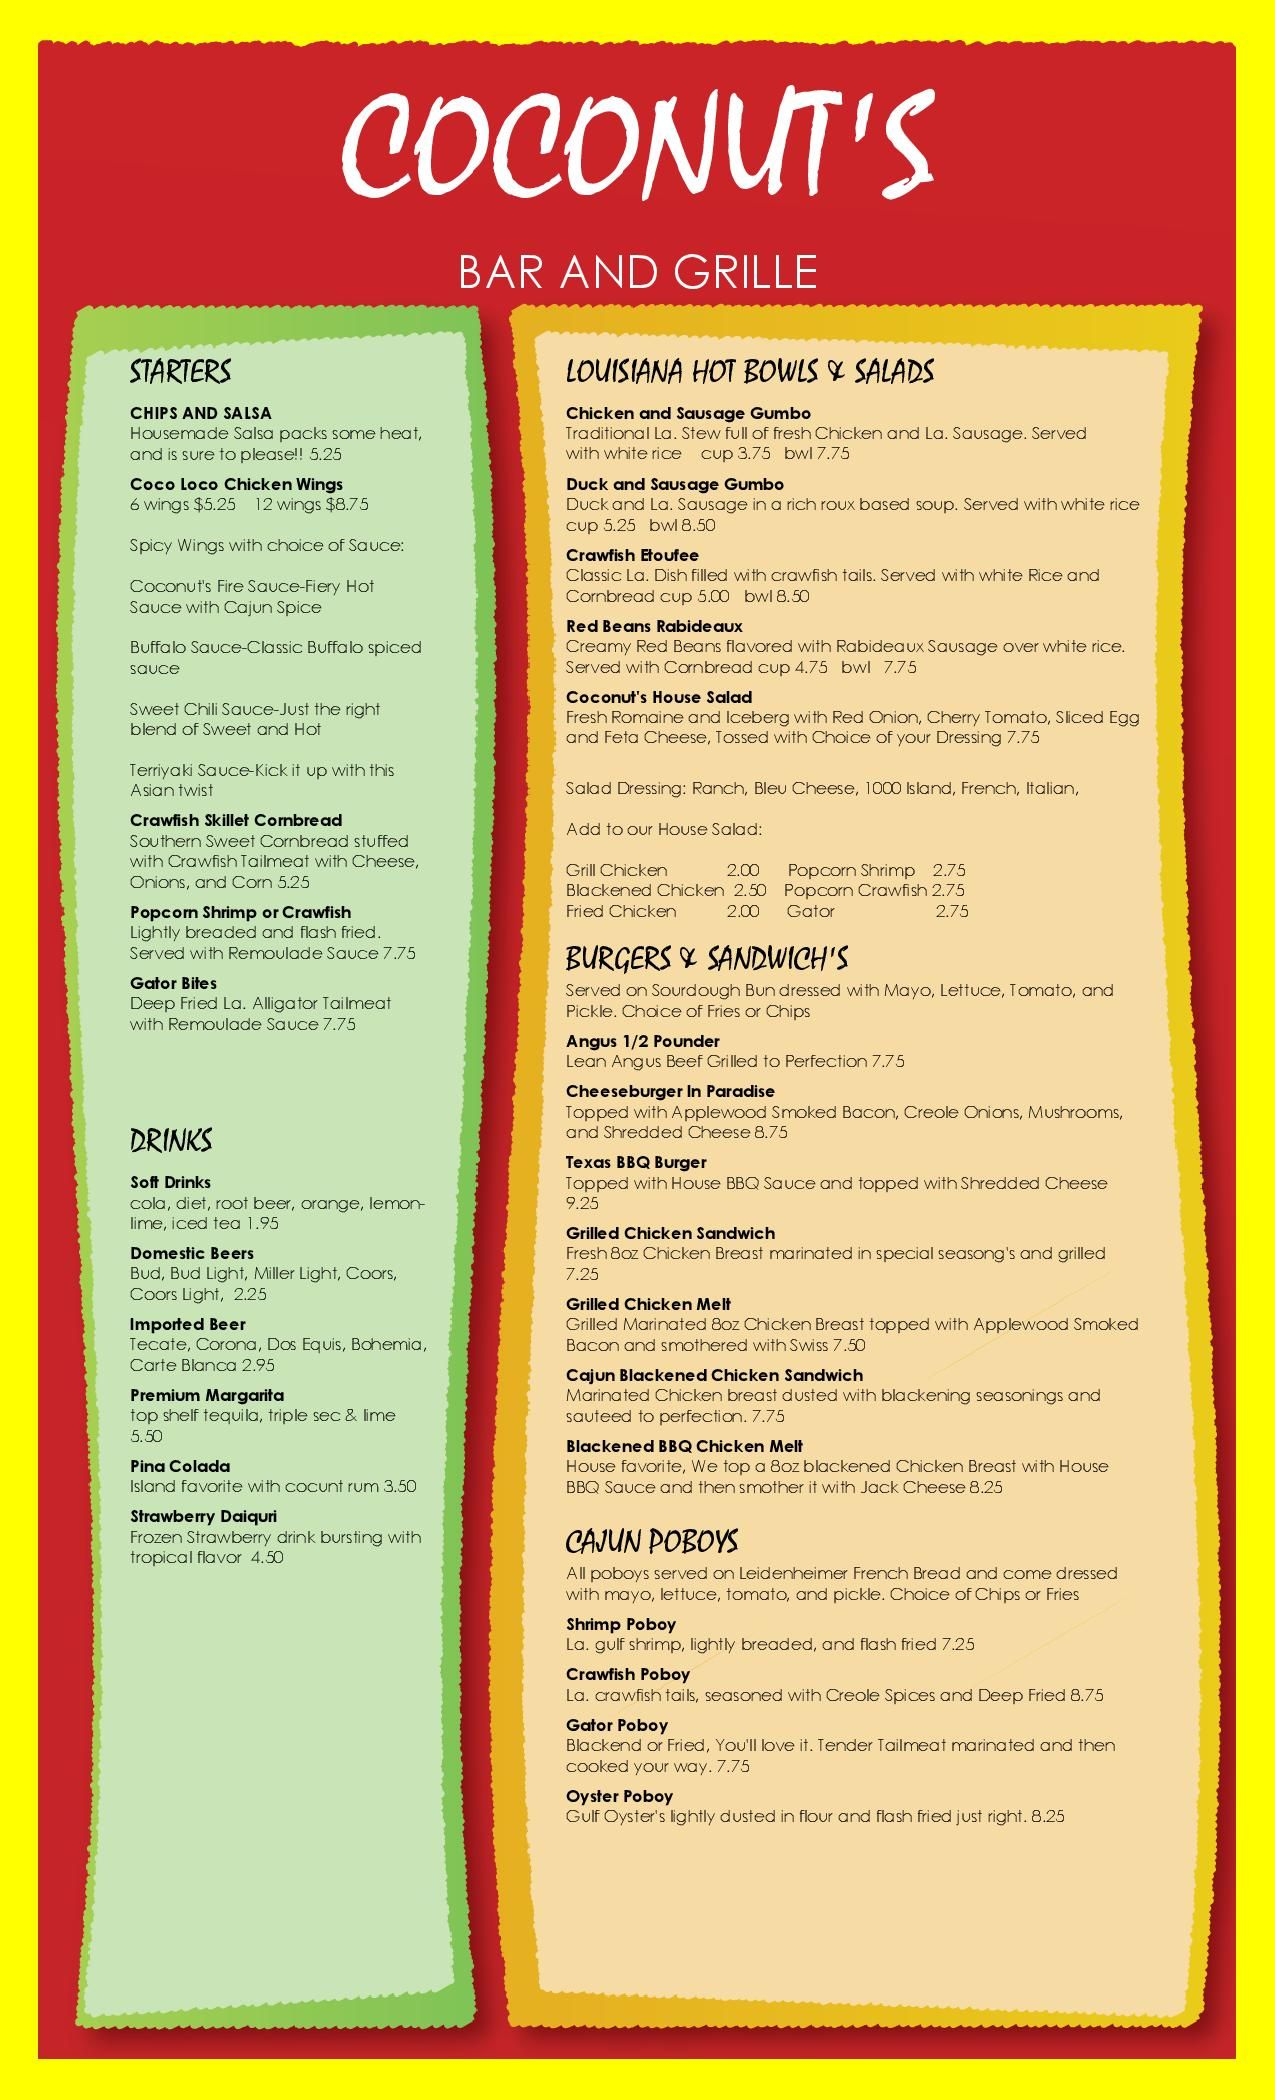 Bar And Grille Template Menu Design Chips And Salsa Menu Design Spicy Wings